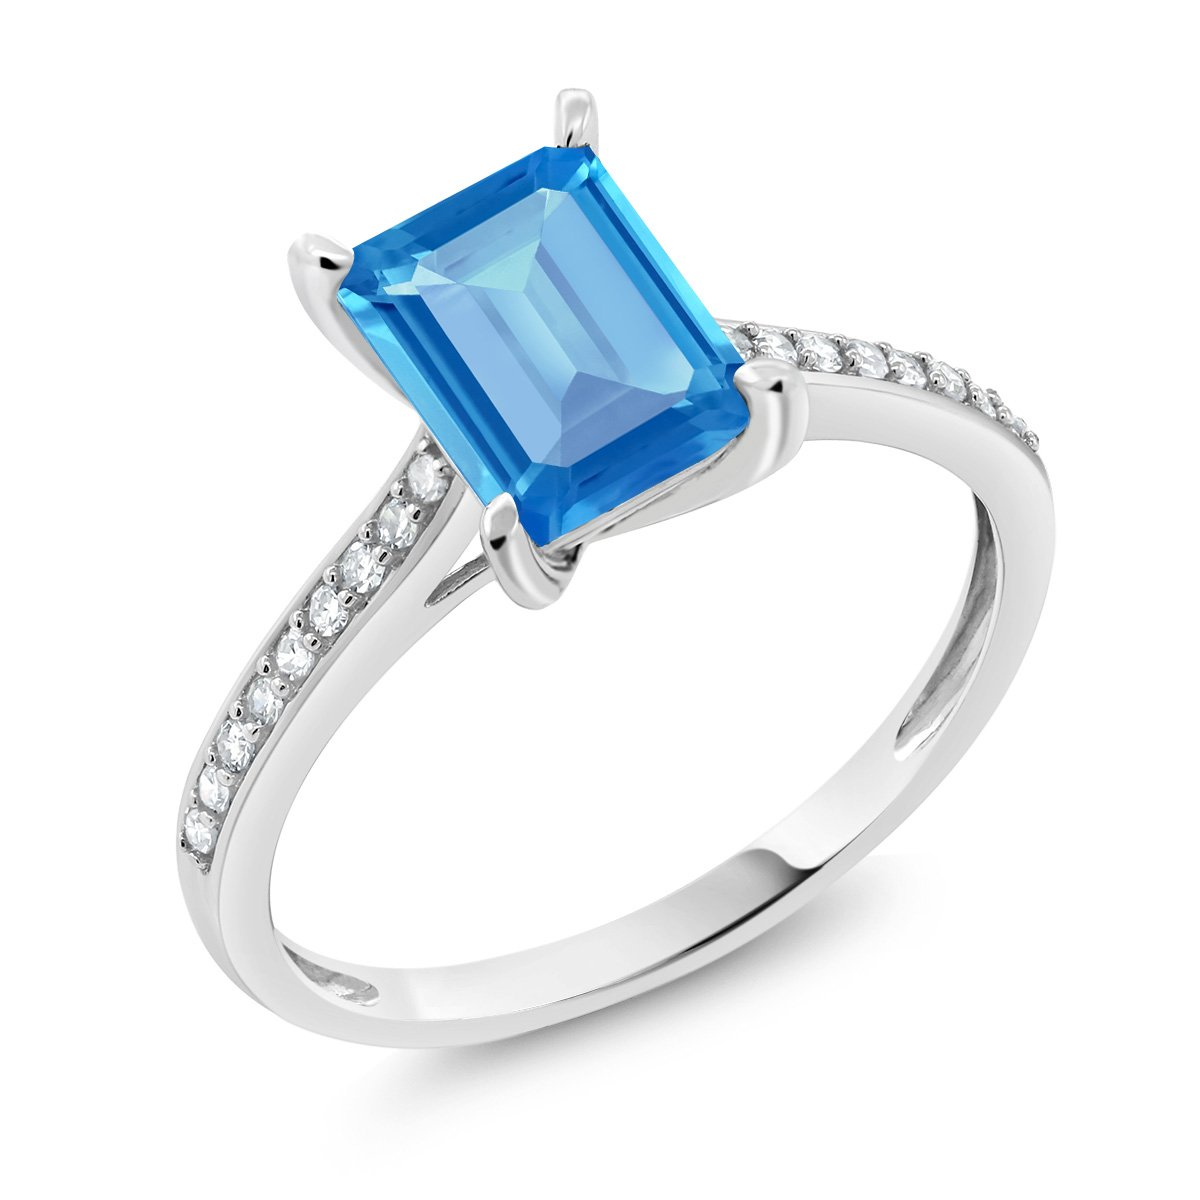 Gem Stone King 10K White Gold Swiss Blue Topaz and Diamond Women's Engagement Ring 2.03 Ct Emerald Cut (Available 5,6,7,8,9)